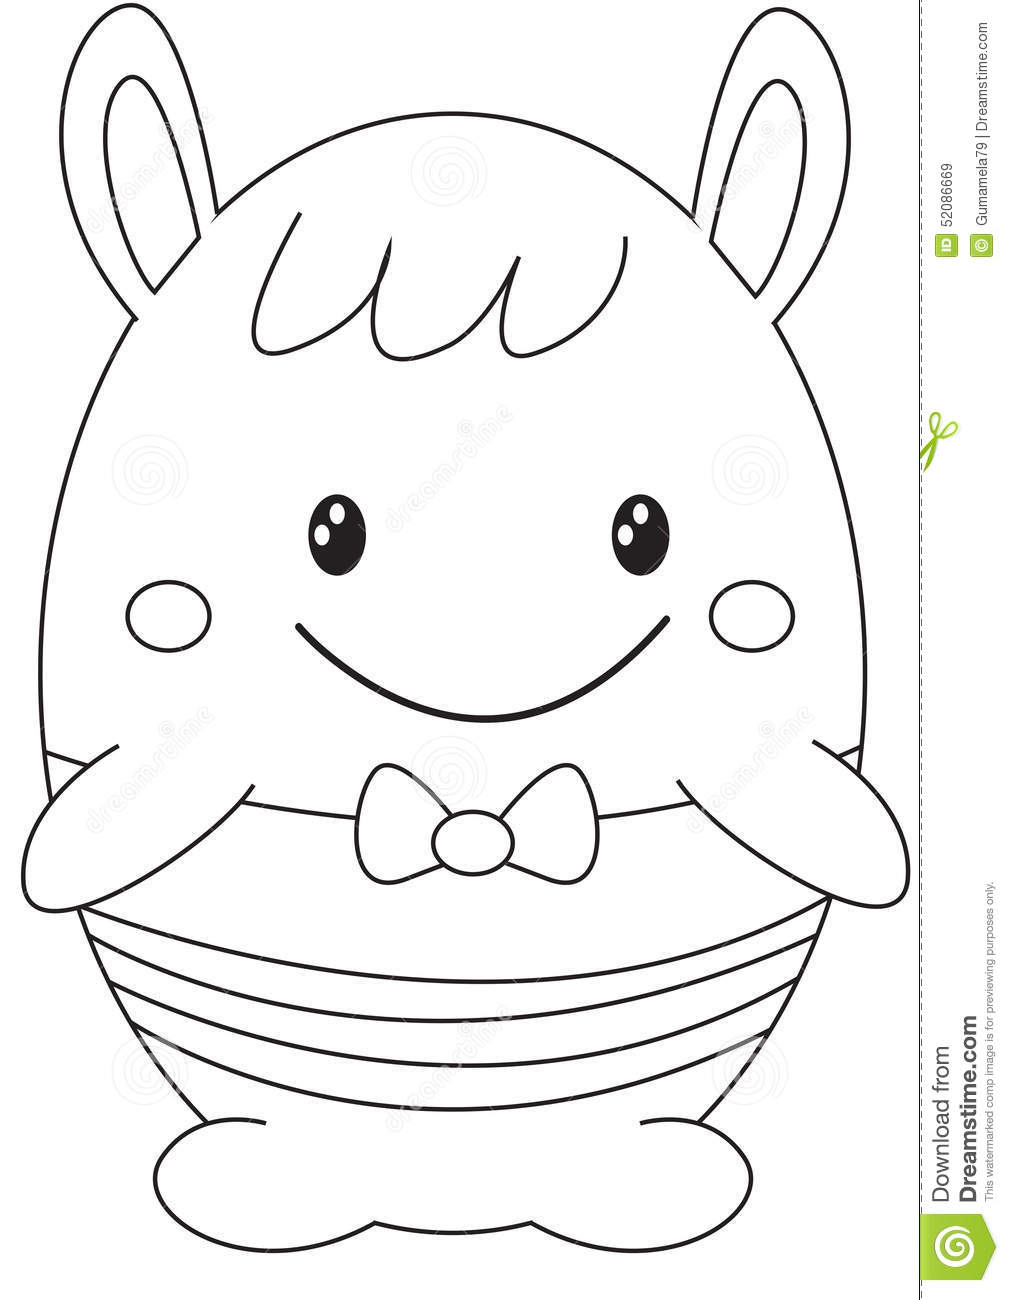 Egg Shaped Stuffed Toy Coloring Page Stock Illustration